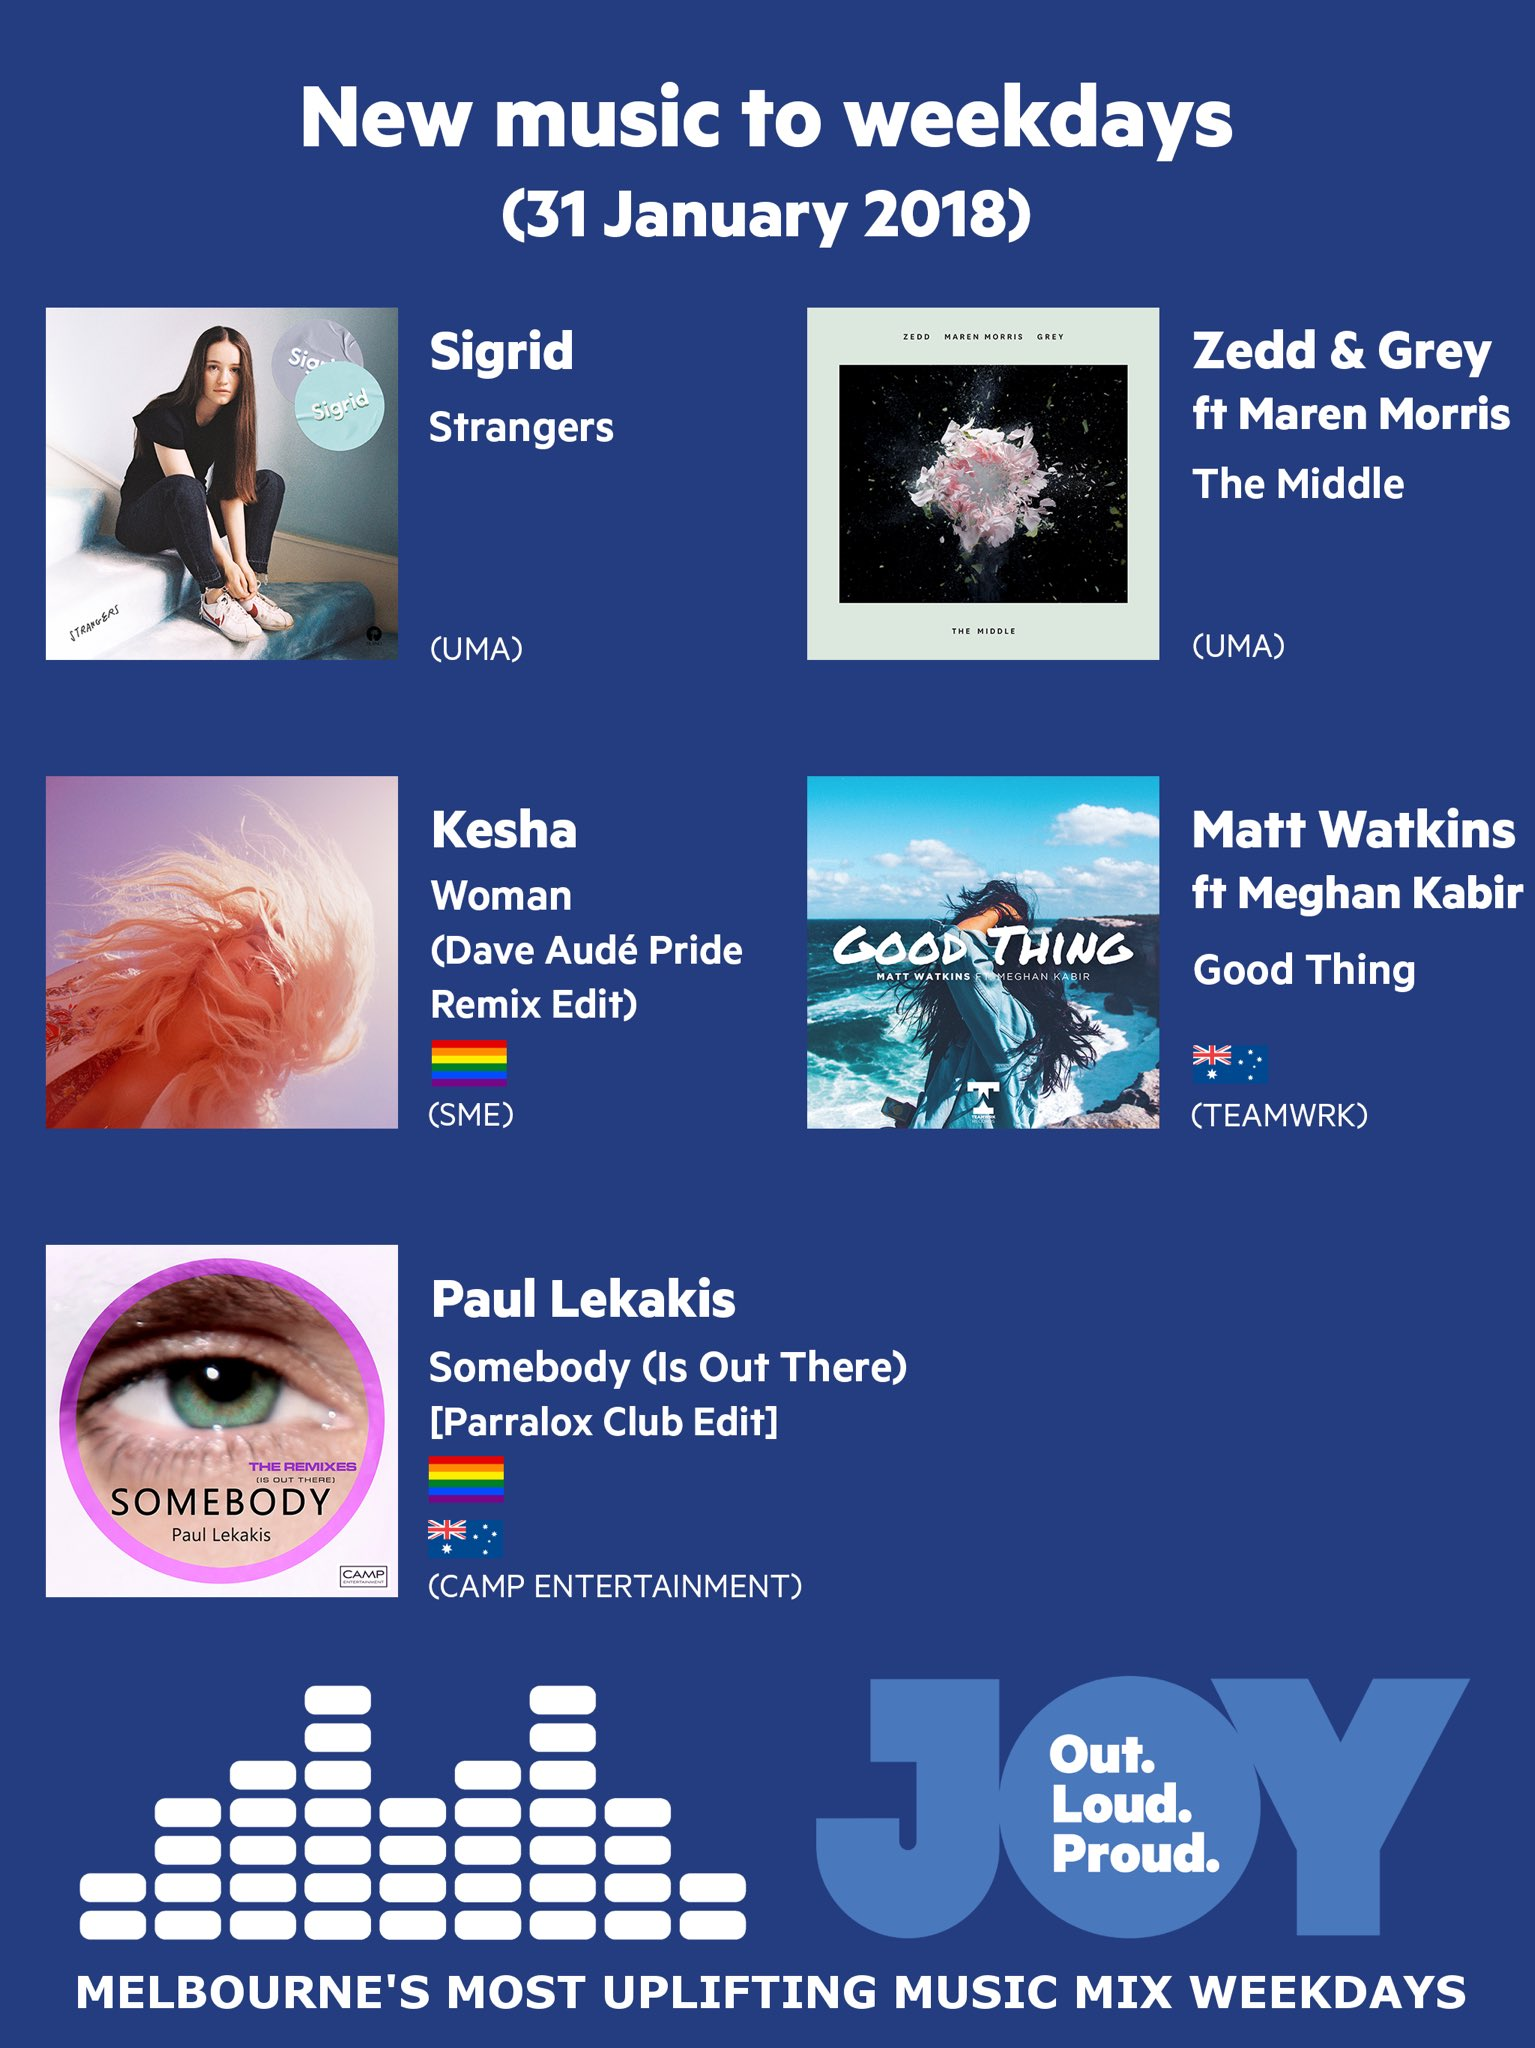 New Paul Lekakis song added to JOY949 Daytime playlist